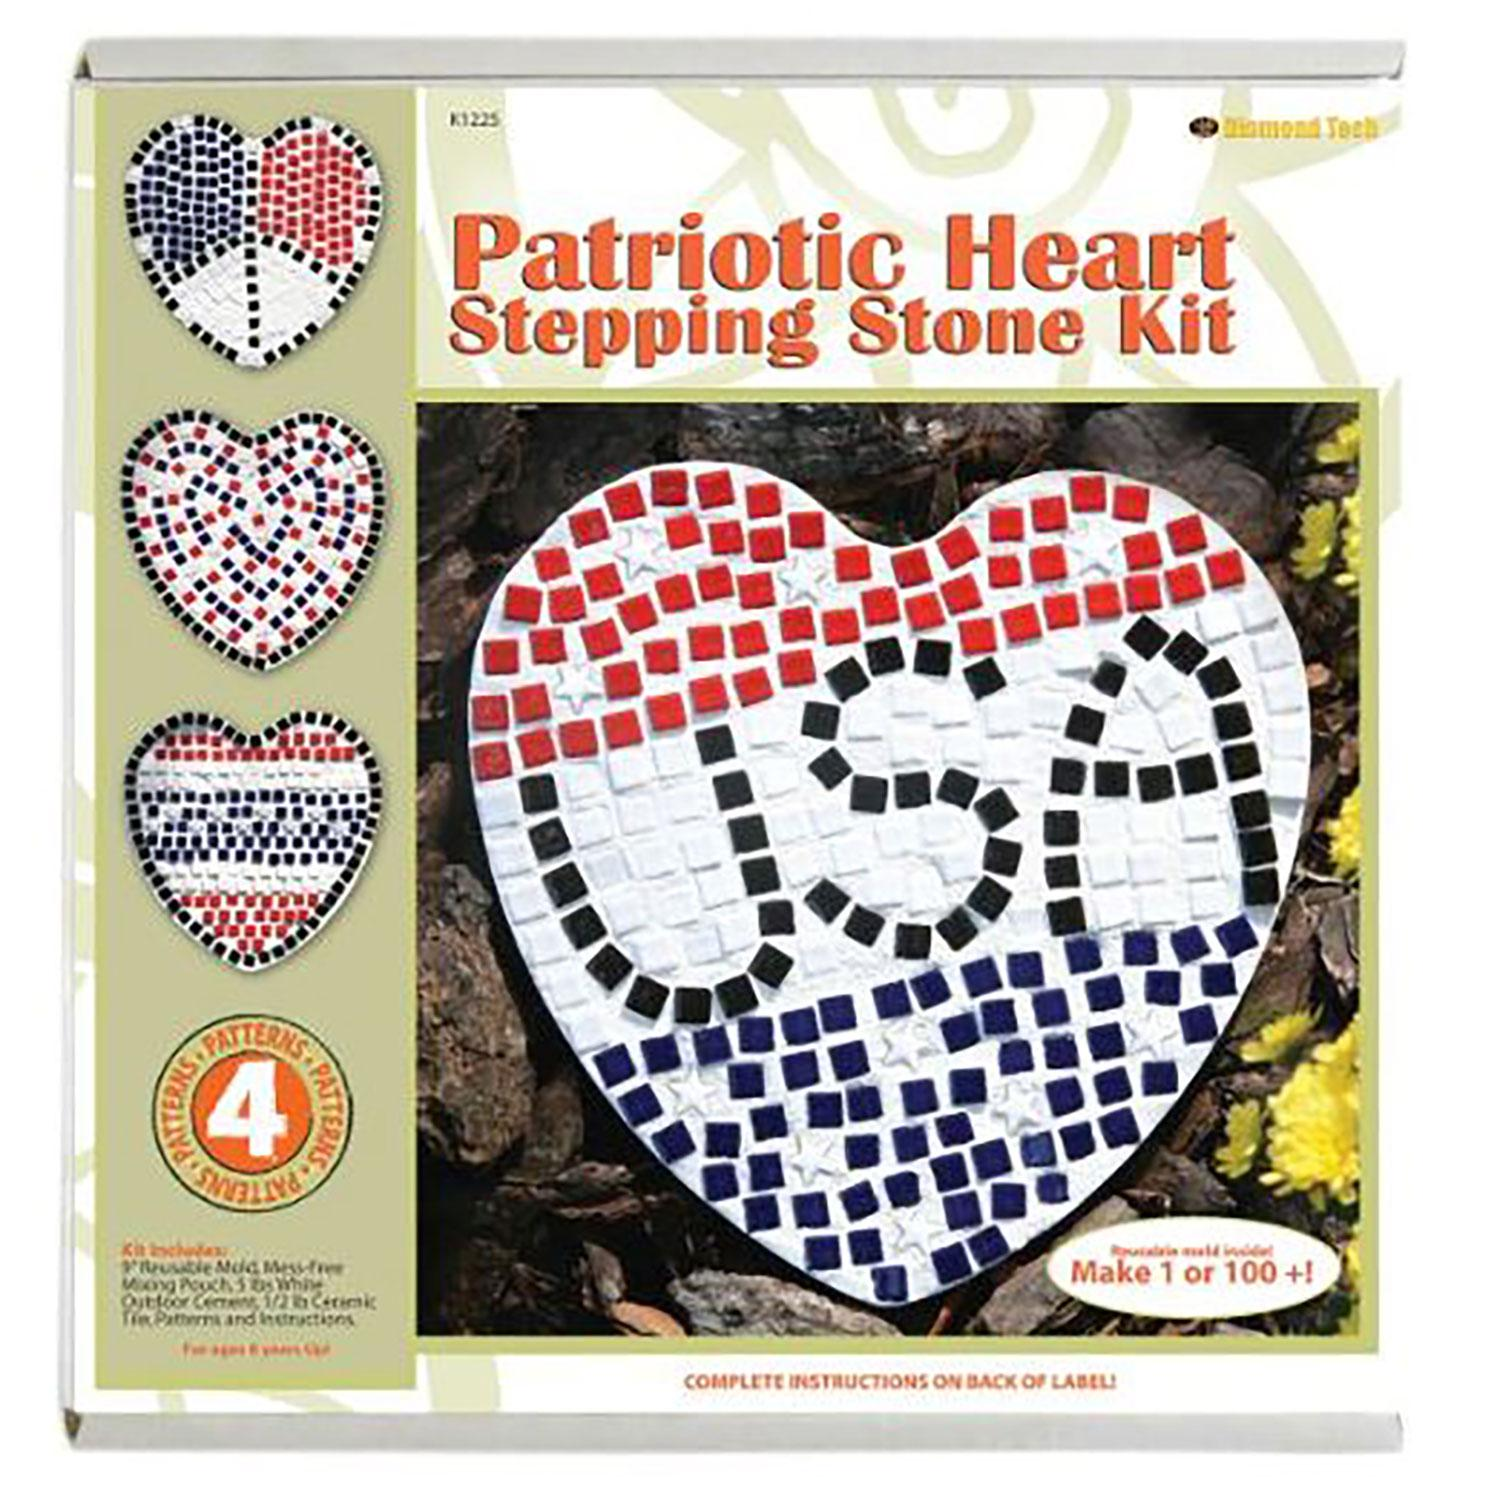 Patriotic Heart Stepping Stone Kit